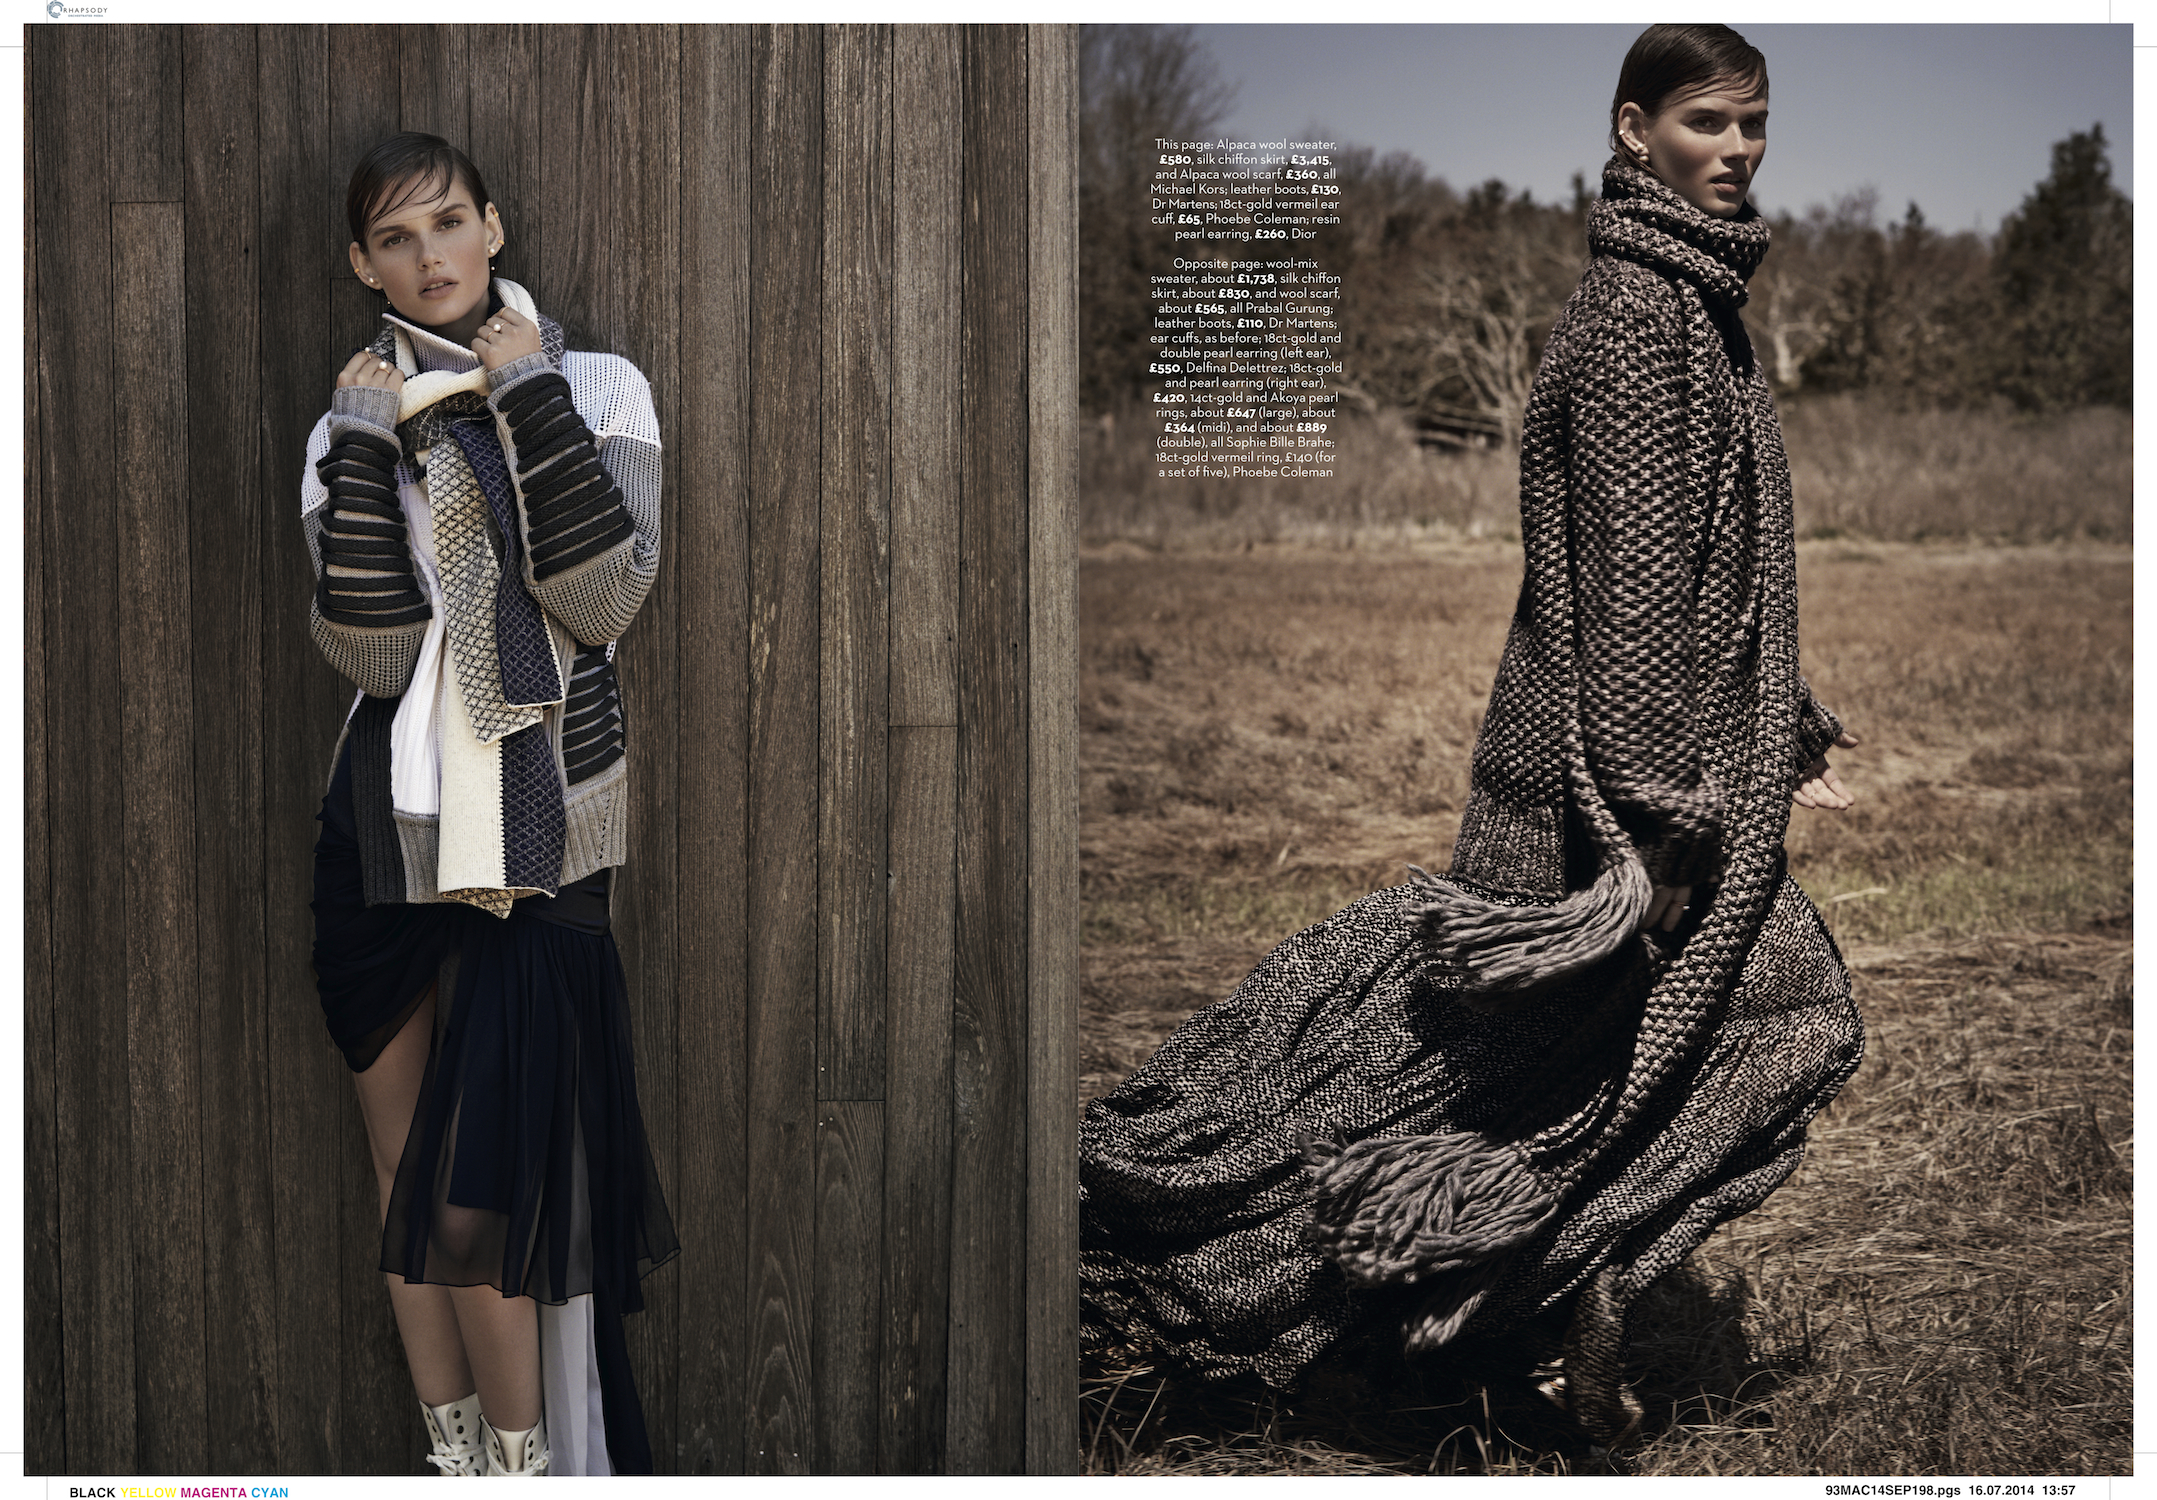 marie claire uk photo shoot by james macari and county fair productions in the hamptons 3